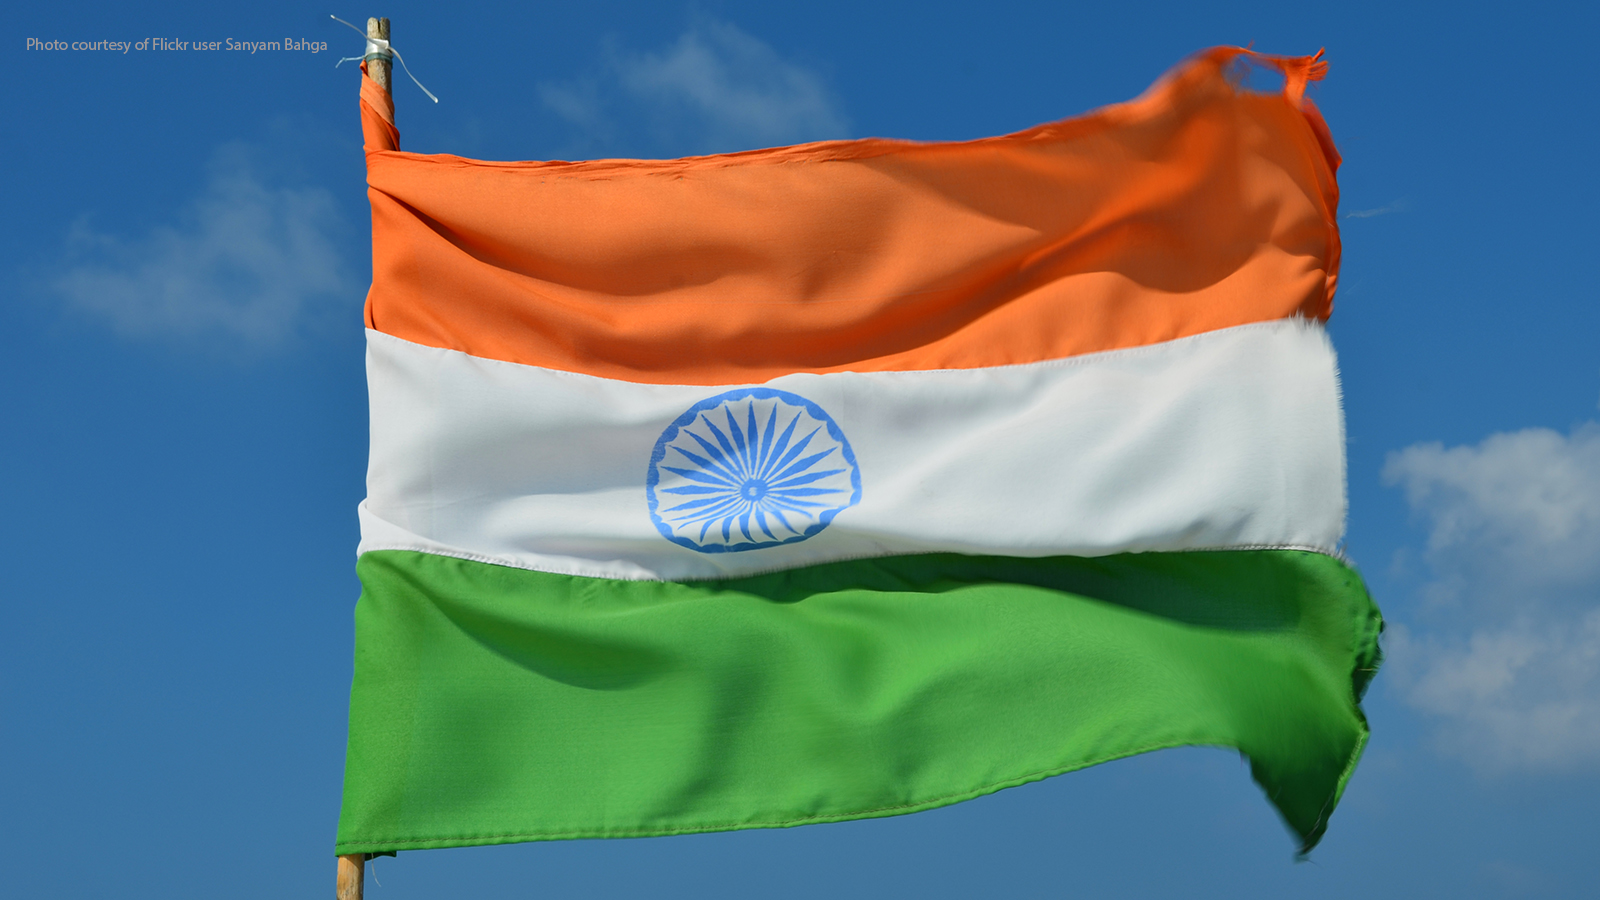 Indian flag against blue sky.